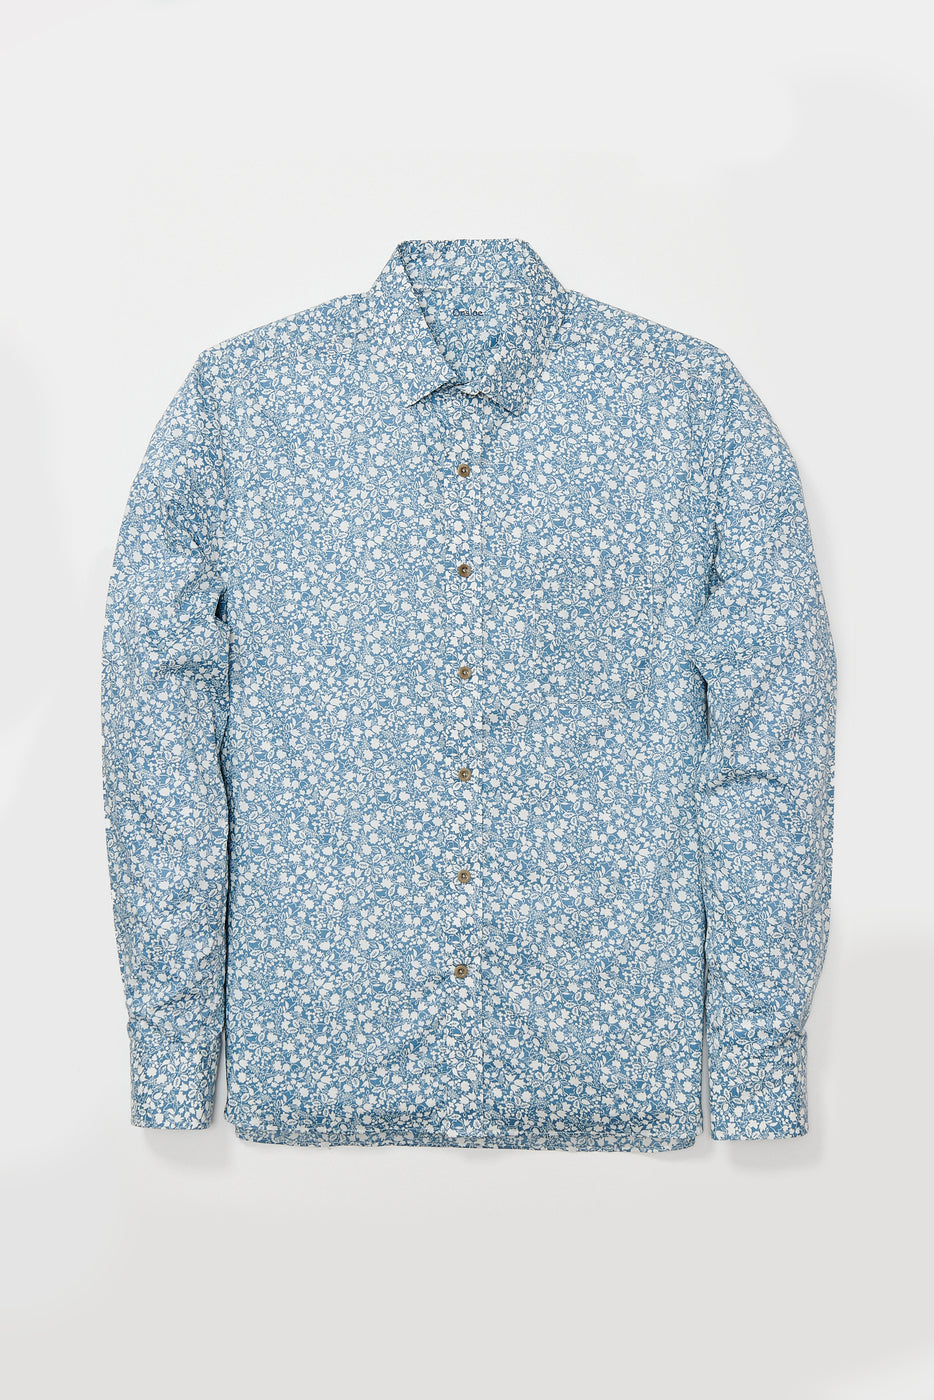 Load image into Gallery viewer, Ogeechee Shirt in Blue Floral Print